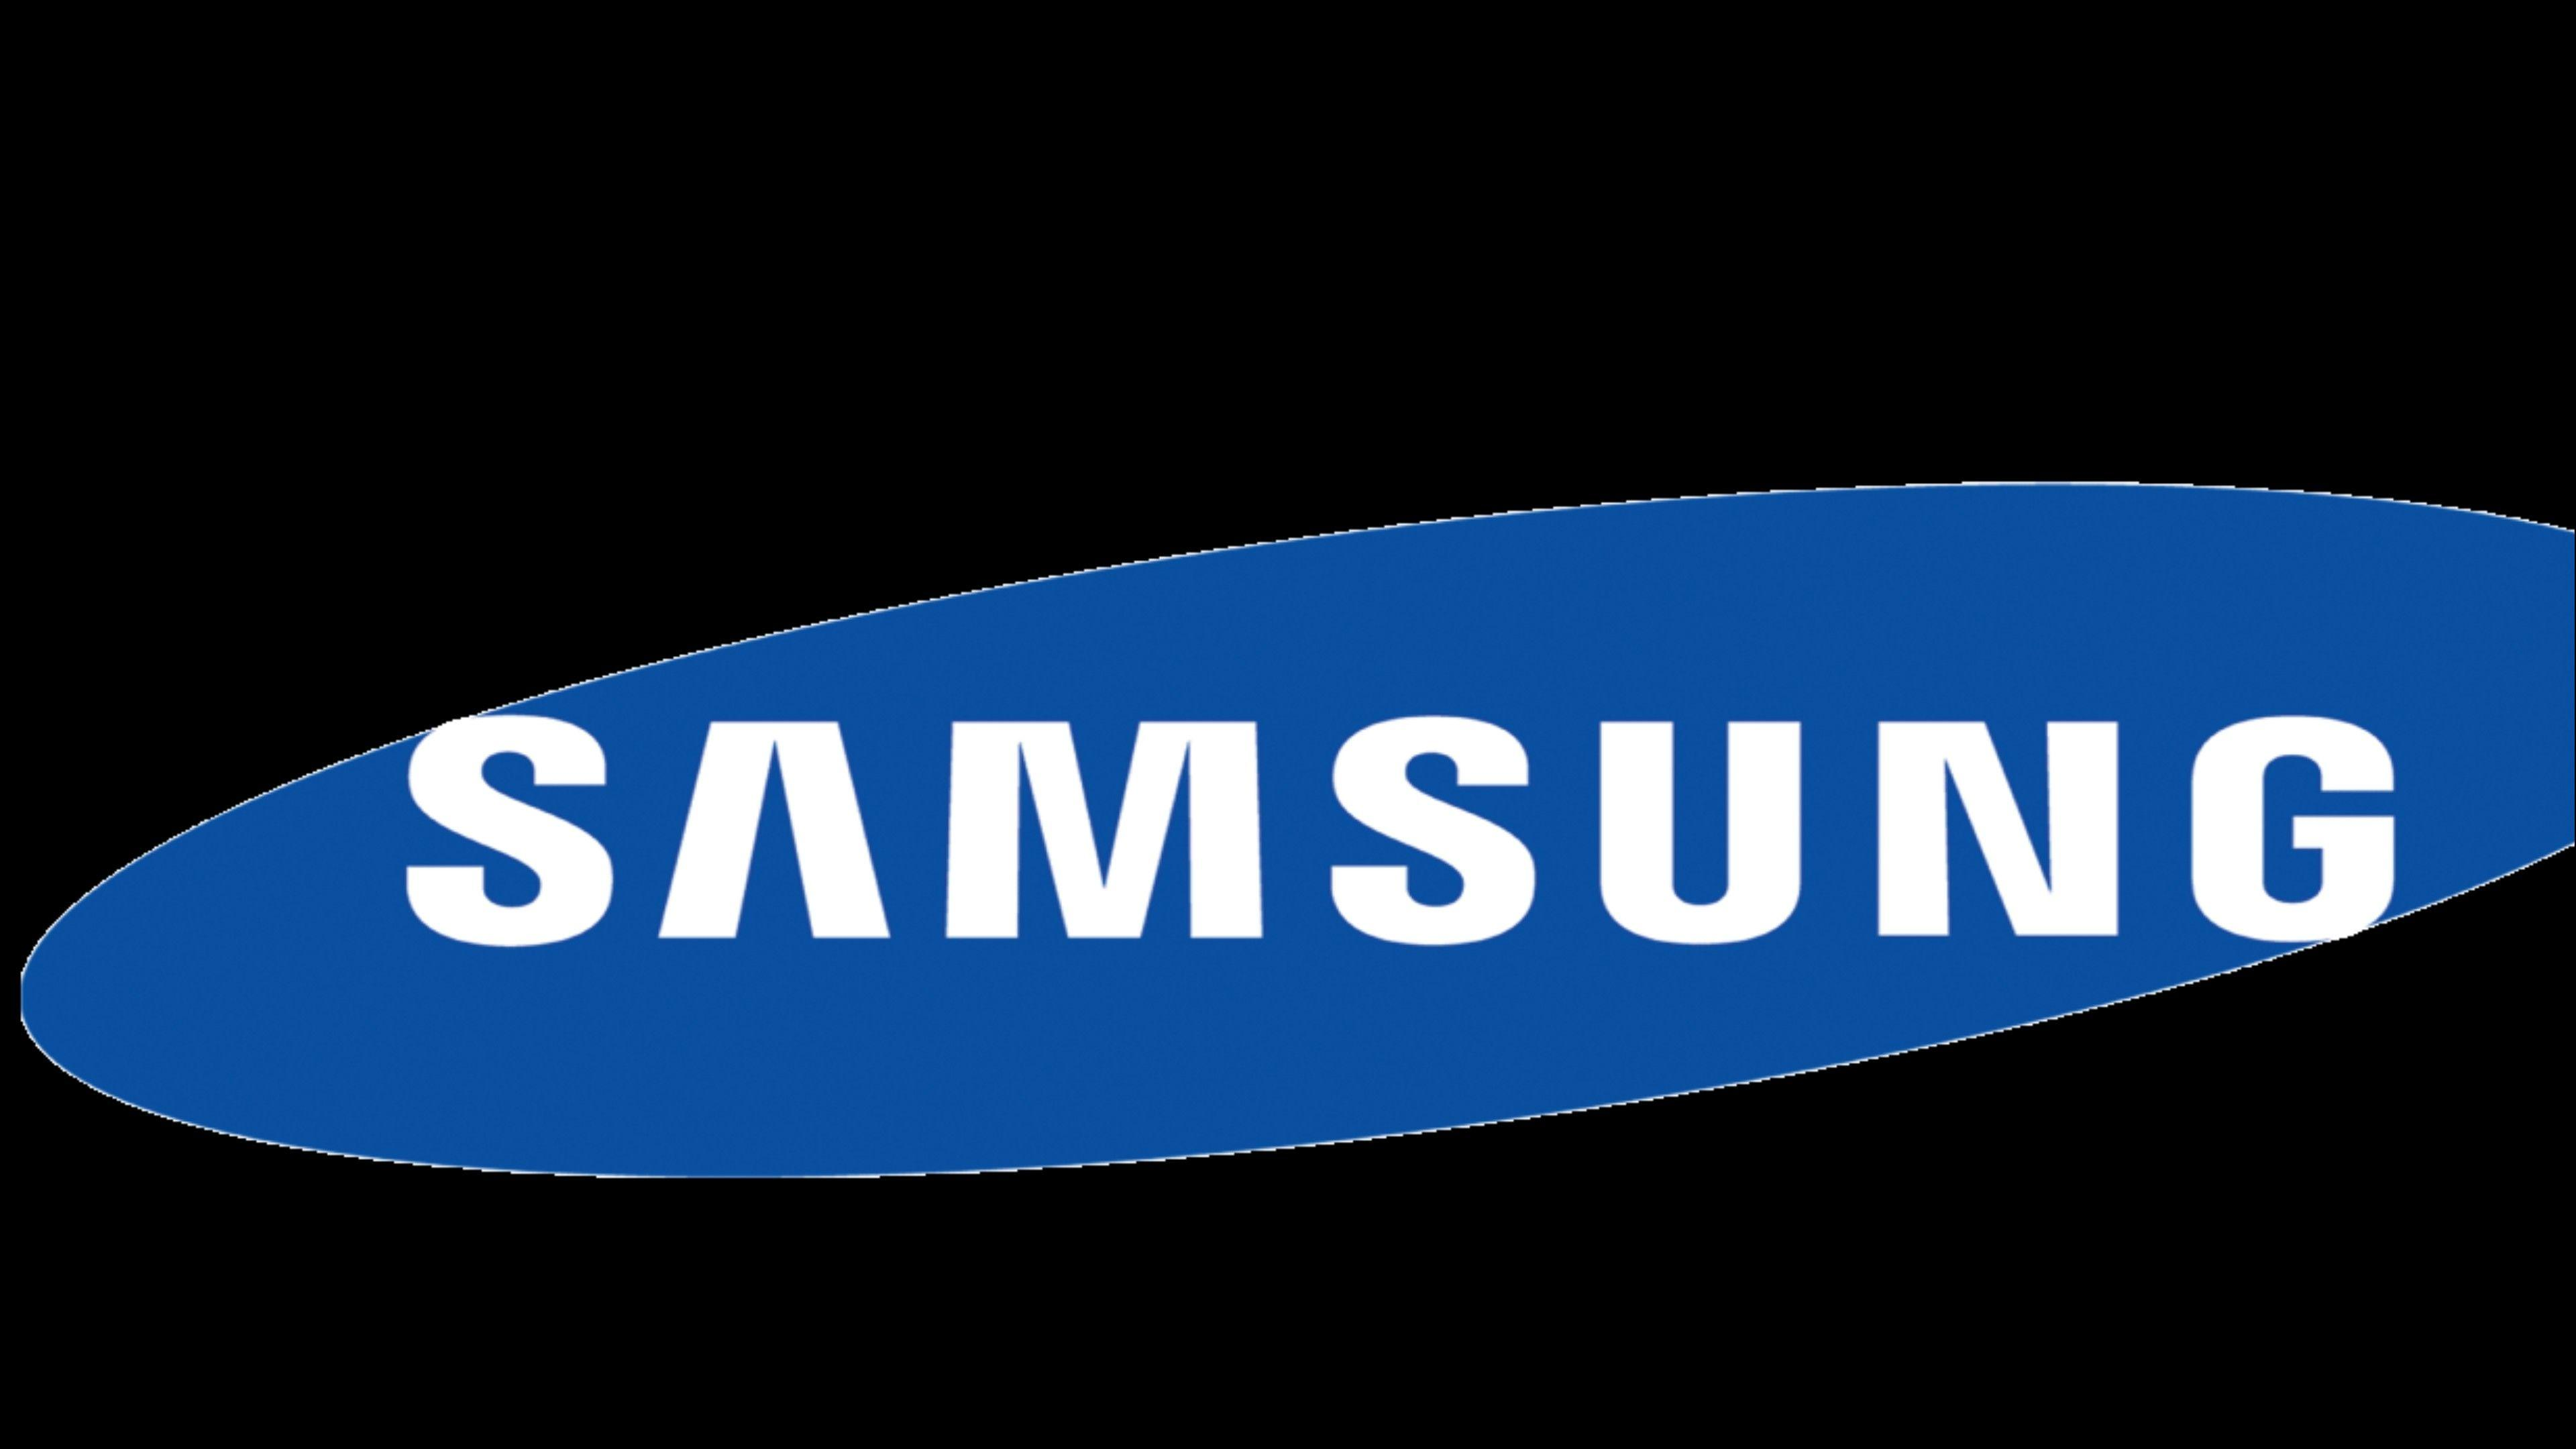 Samsung LED TV Logo Wallpapers - Wallpaper Cave